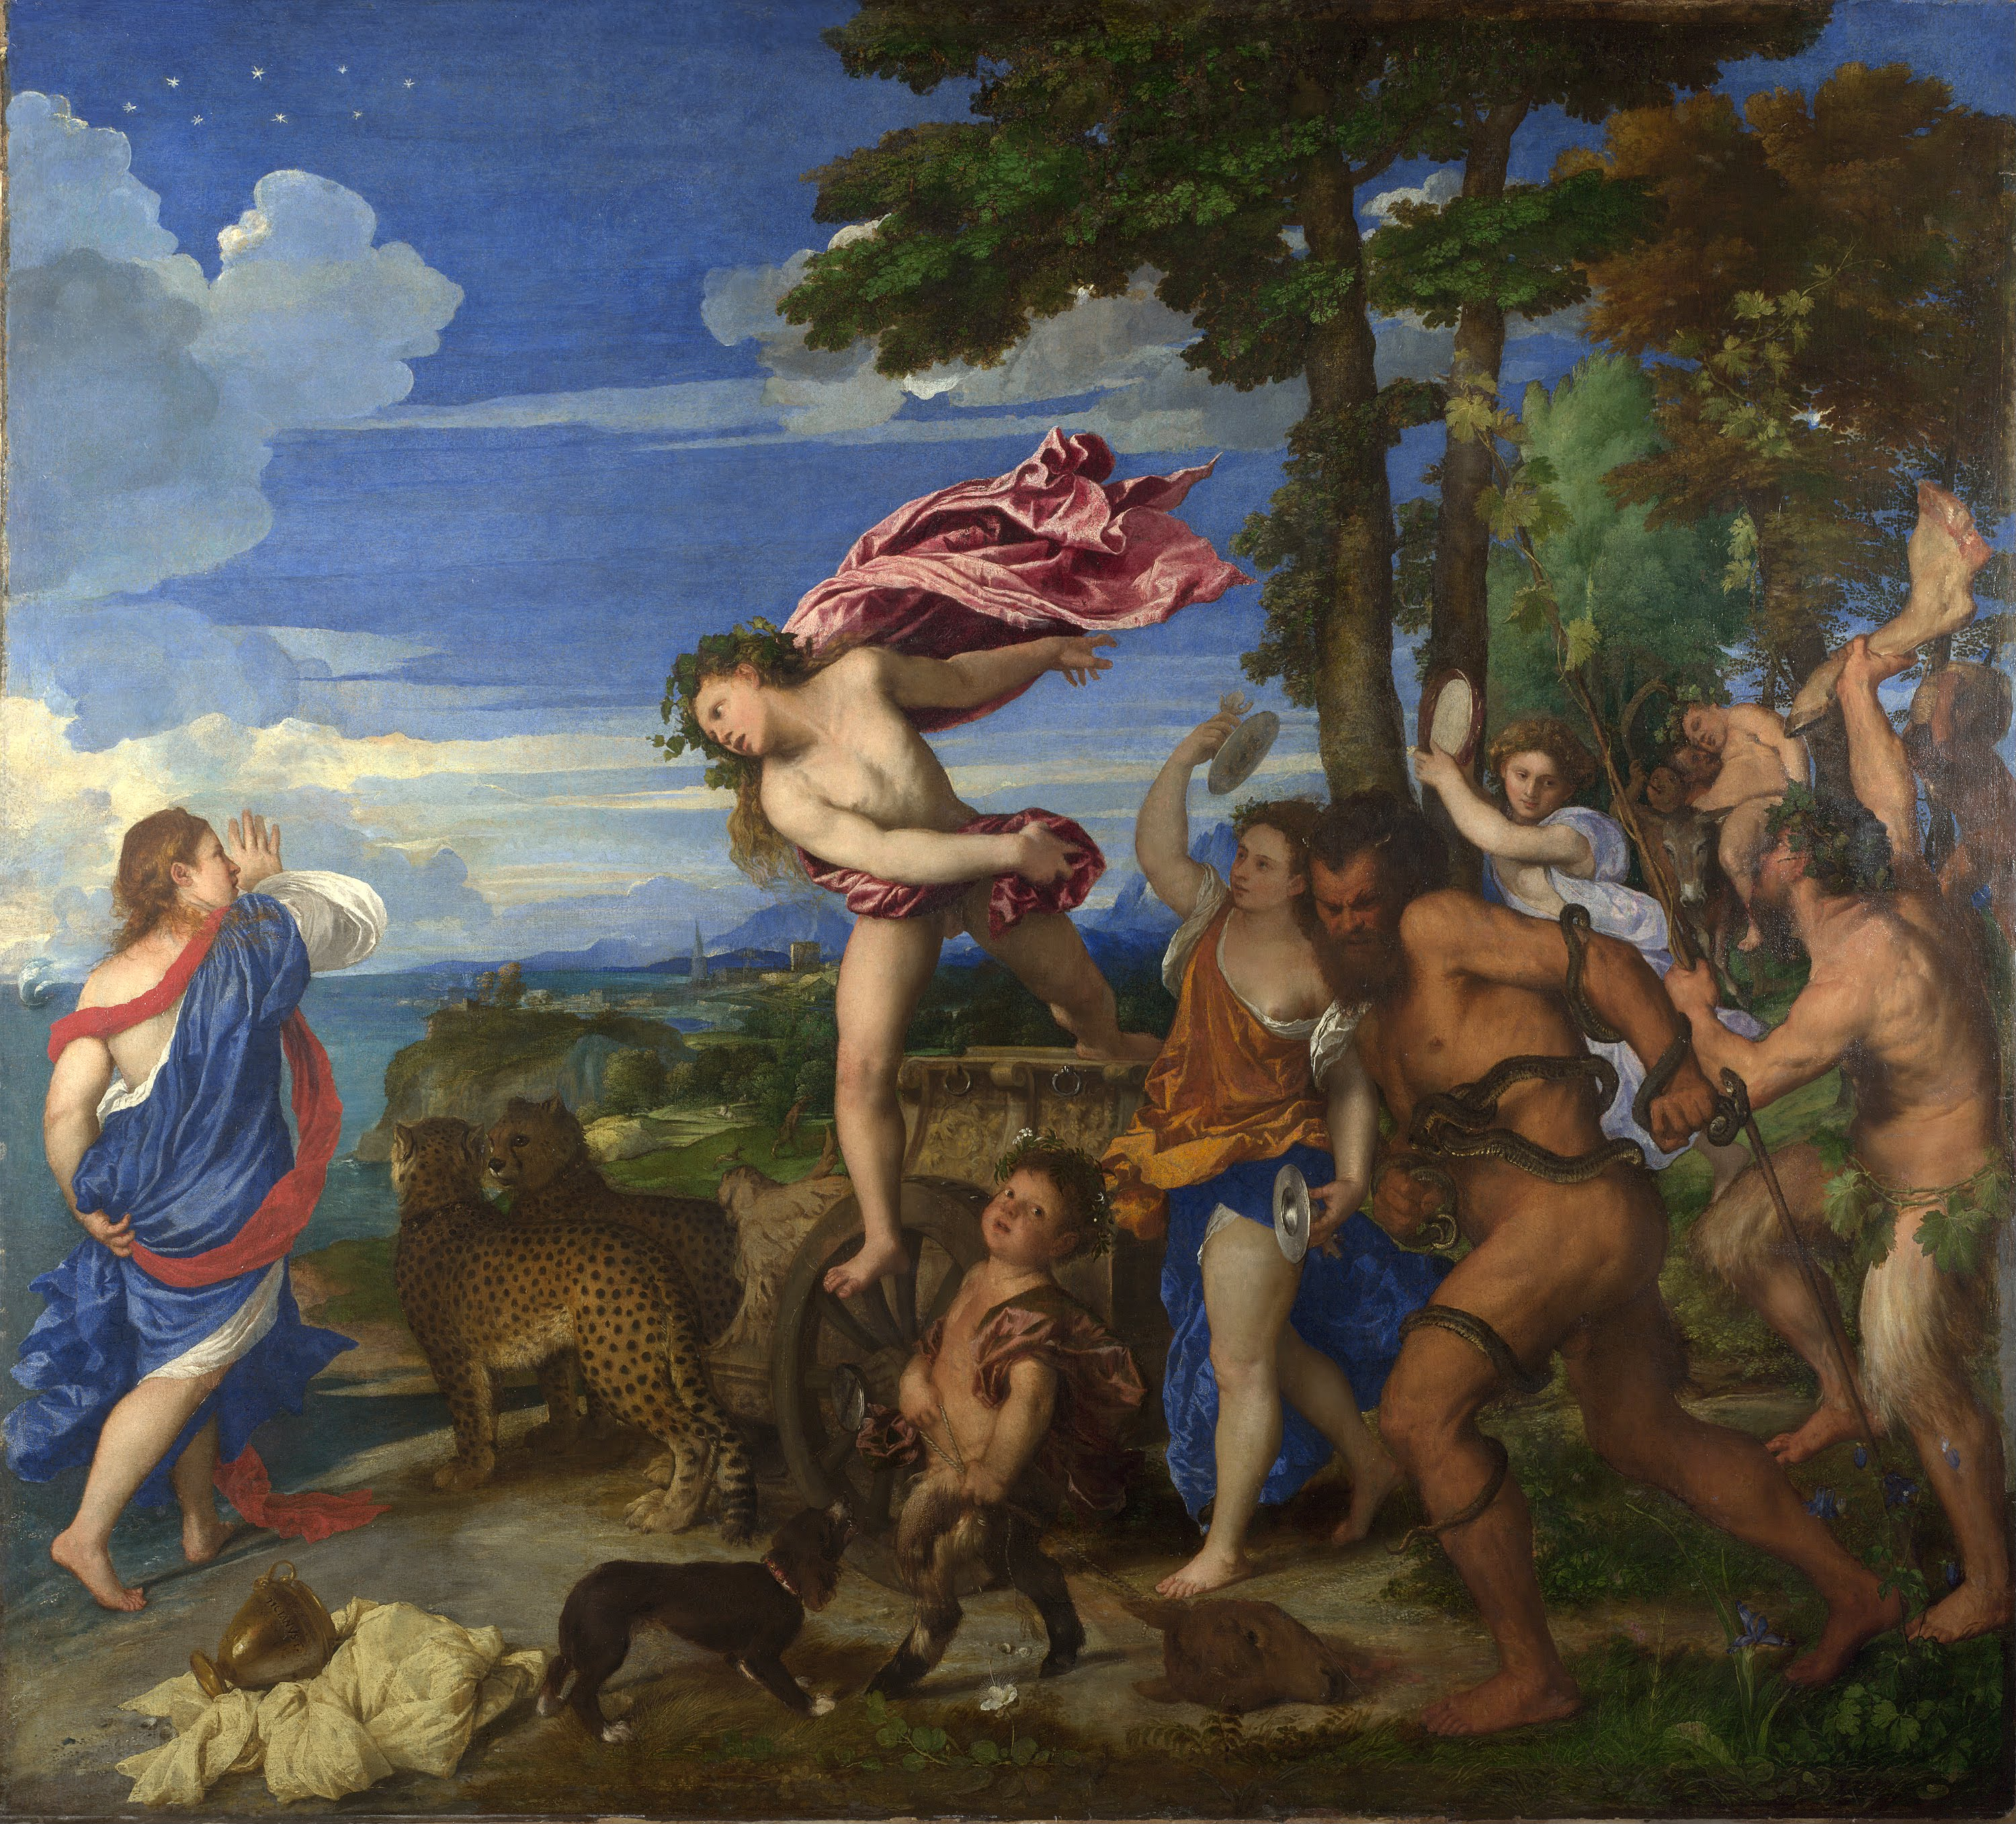 https://upload.wikimedia.org/wikipedia/commons/b/bb/Titian_-_Bacchus_and_Ariadne_-_Google_Art_Project.jpg